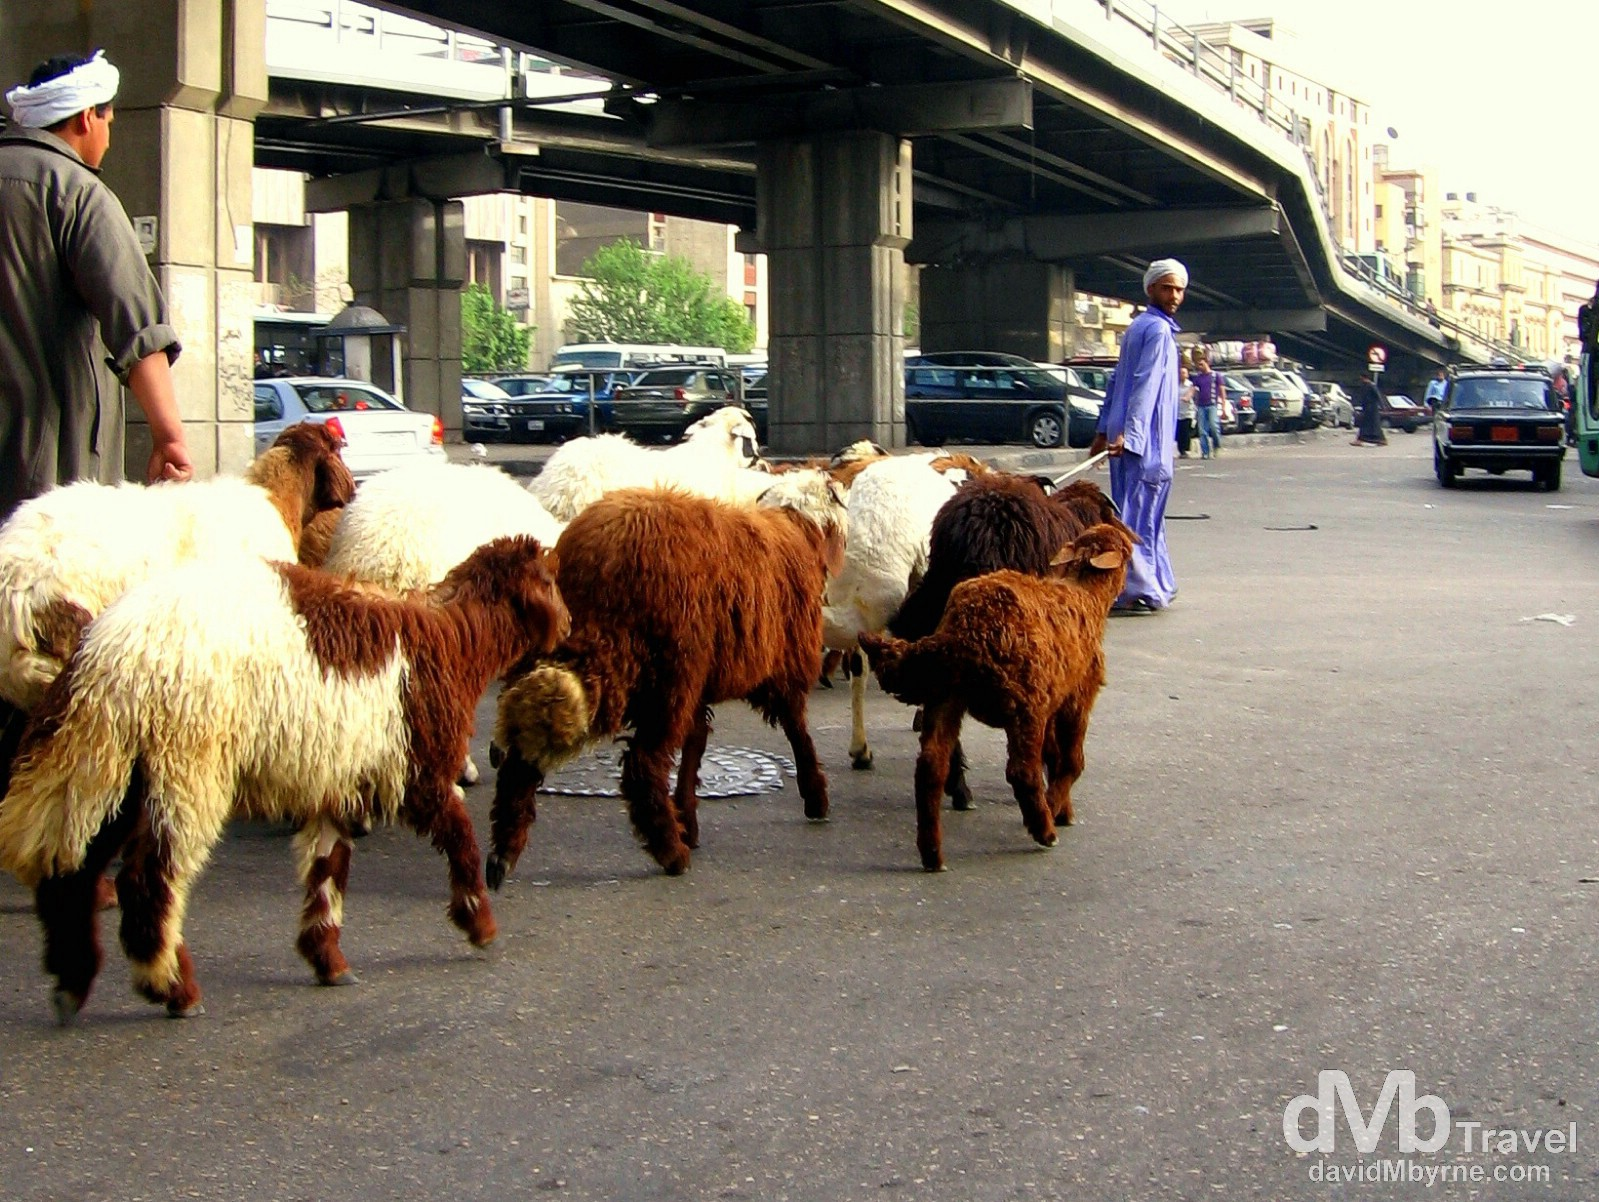 Goat herding on the streets of Al-Azhar, Cairo, Egypt. April 9, 2008.